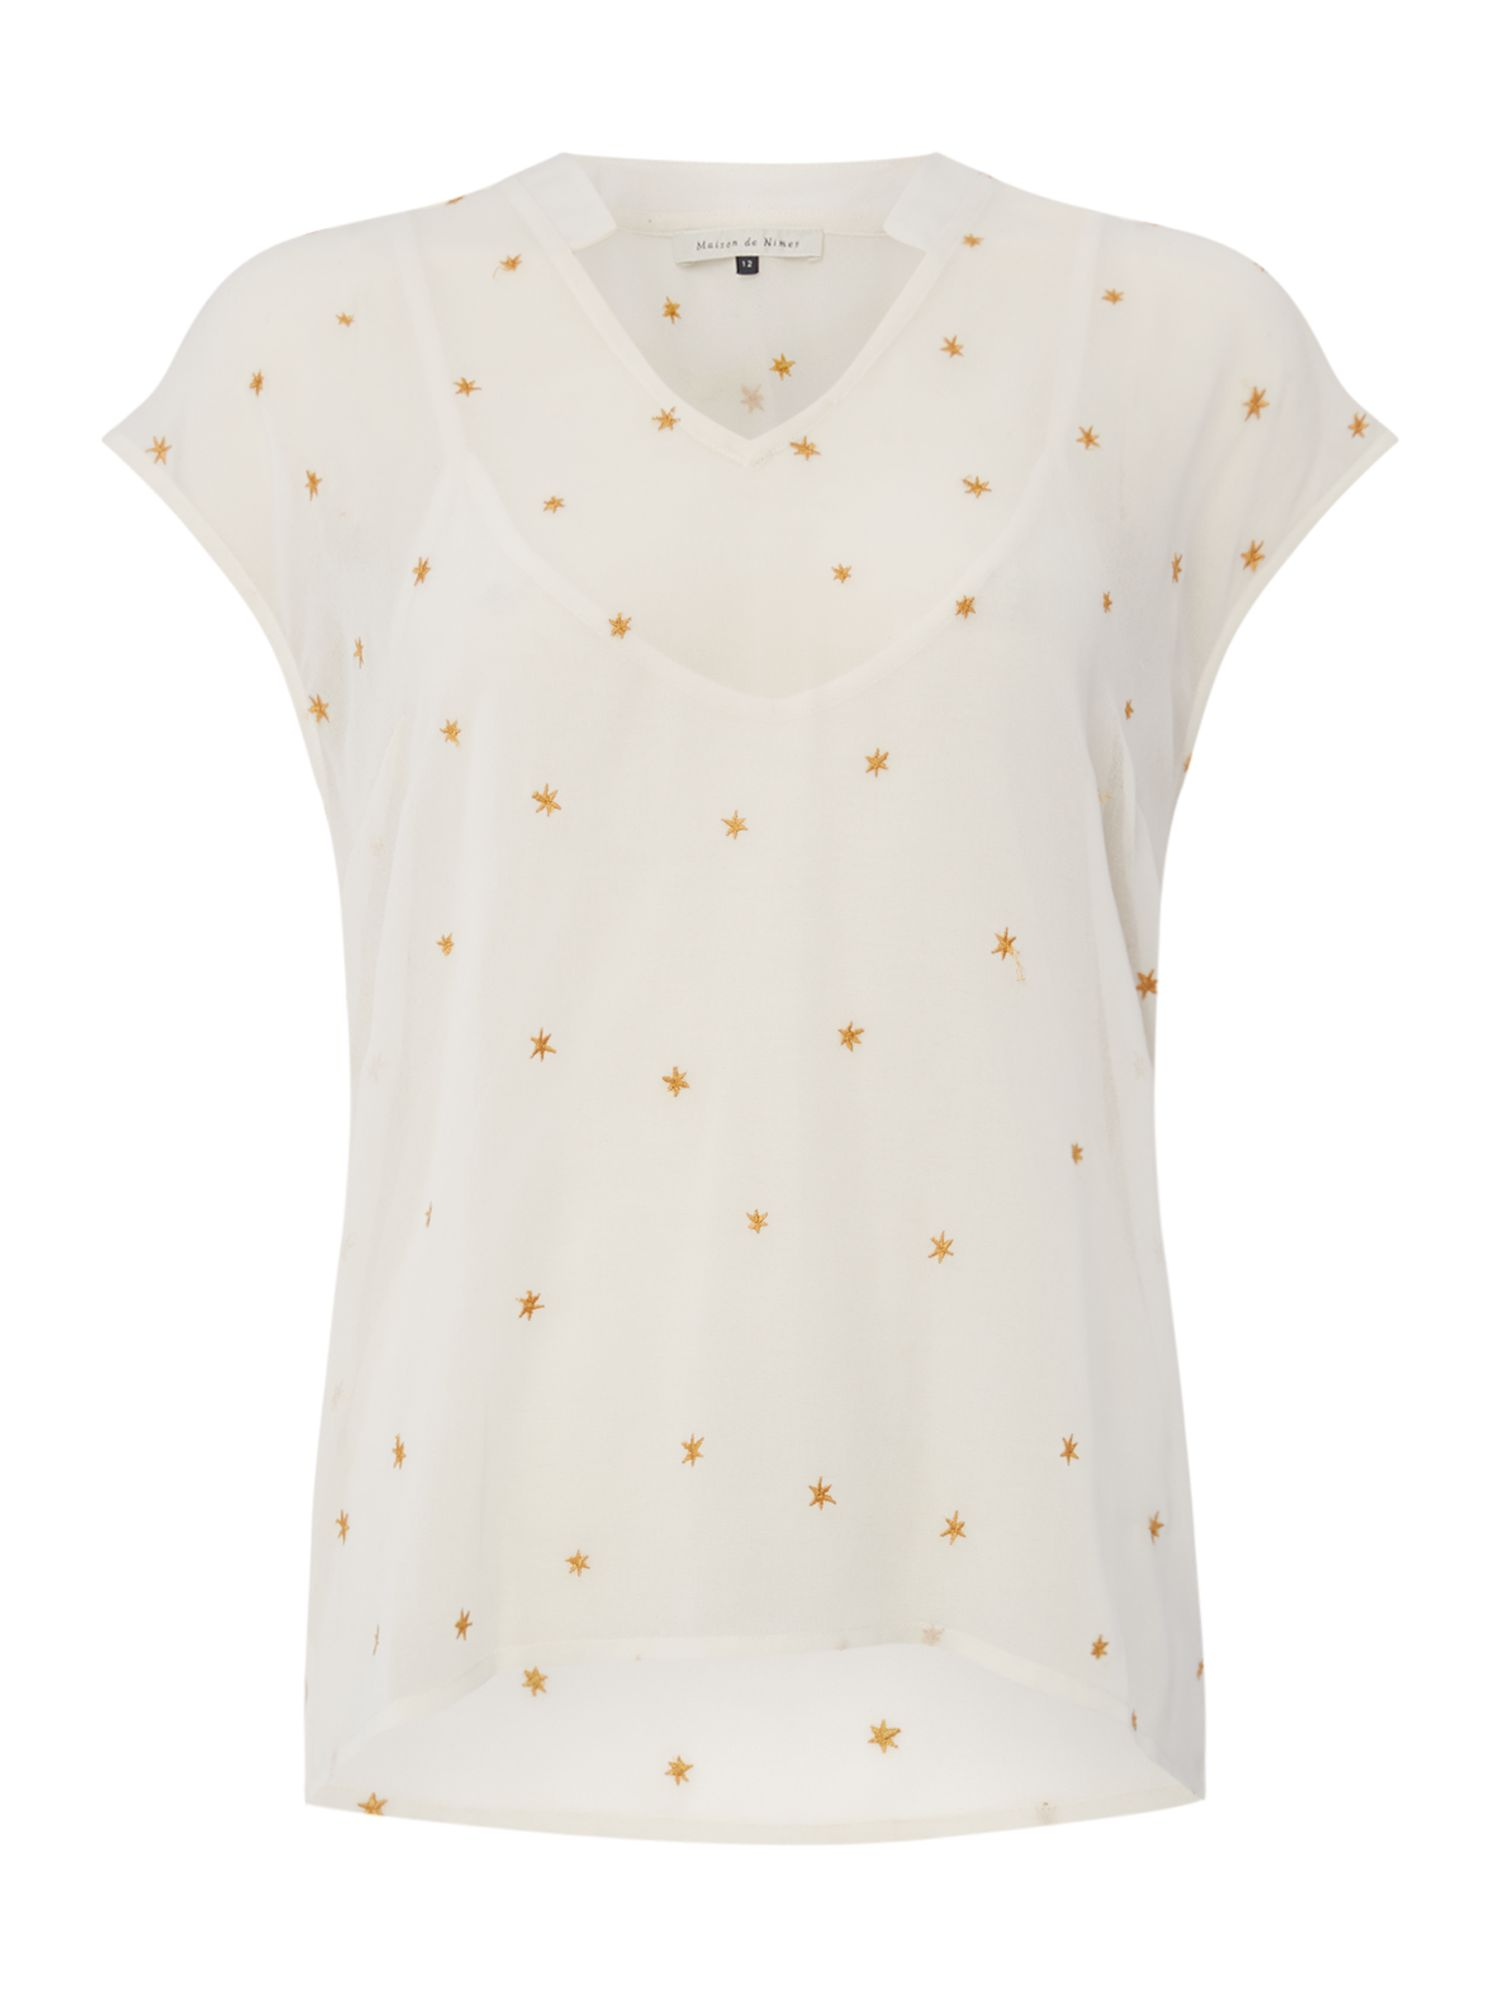 Maison De Nimes Star Embroidery Blouse, Cream